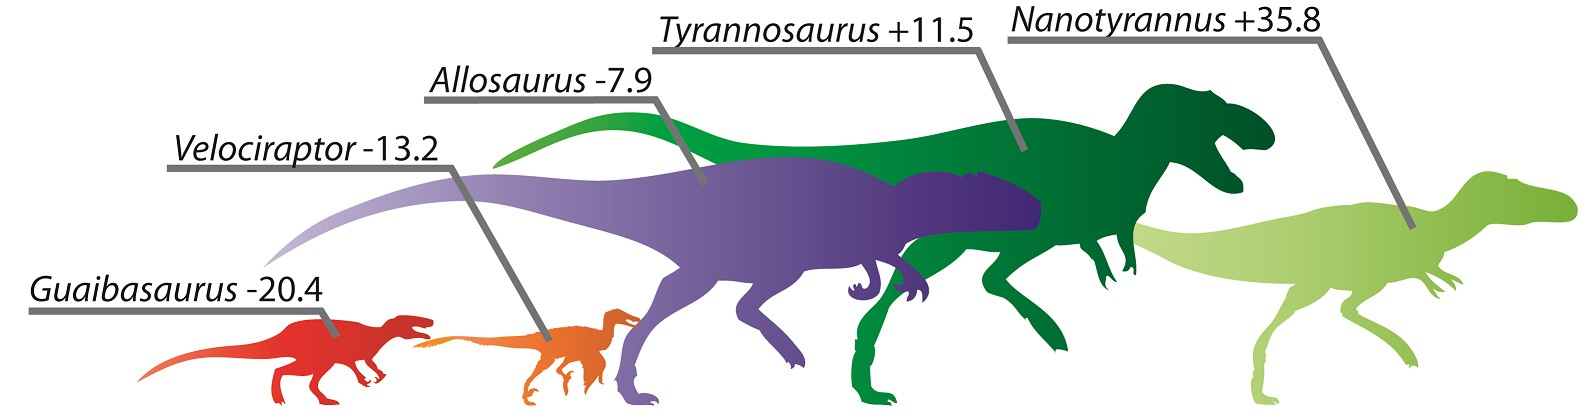 Calculated speed adaptation scores for various dinosaurs. (From left) Guaibasaurus was an early dinosaur with a low score typical of primitive forms; despite its pop culture status, Velociraptor is revealed to be among the least swift of the carnivorous dinosaurs; the Jurassic predator Allosaurus was large and moderately adapted for speed; despite its bulk, Tyrannosaurus scores high on the speed charts; the controversial species Nanotyrannus was the bipedal dino best adapted for speed—the Usain Bolt of its era.